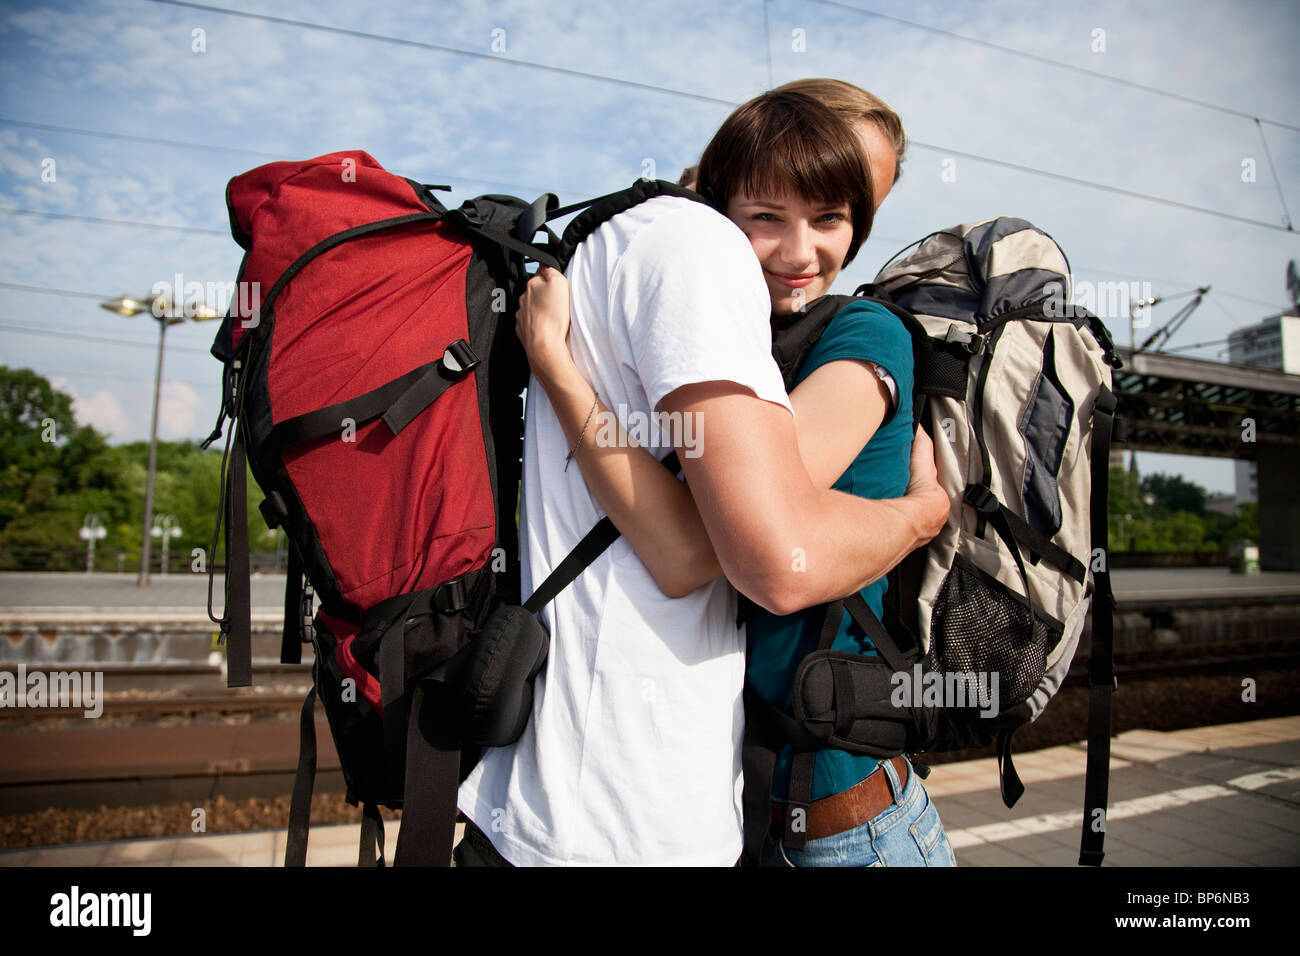 A young woman hugging her boyfriend on a train platform Stock Photo